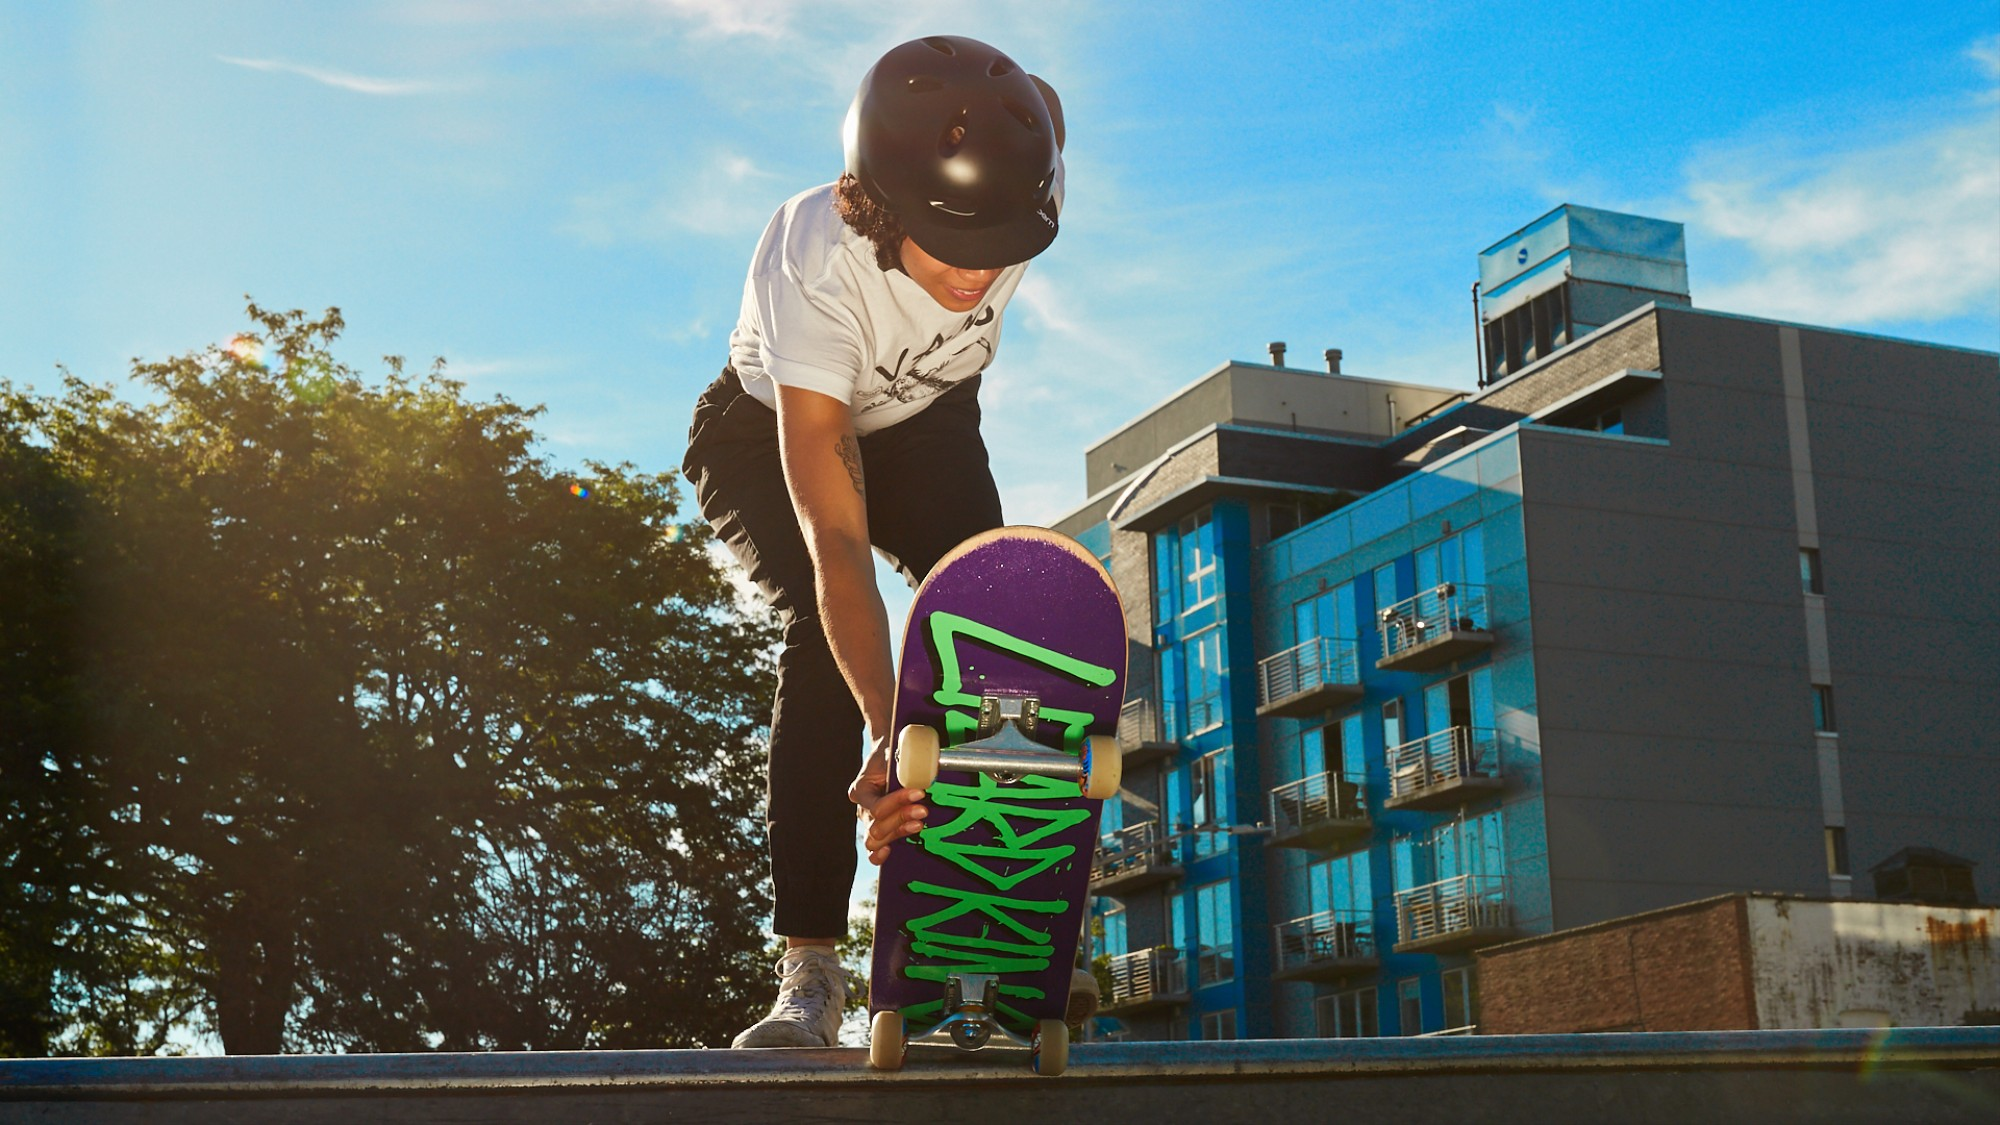 f1bf42f3ebdd Learning to Skateboard When You're an Adult Is Extremely Embarrassing - VICE